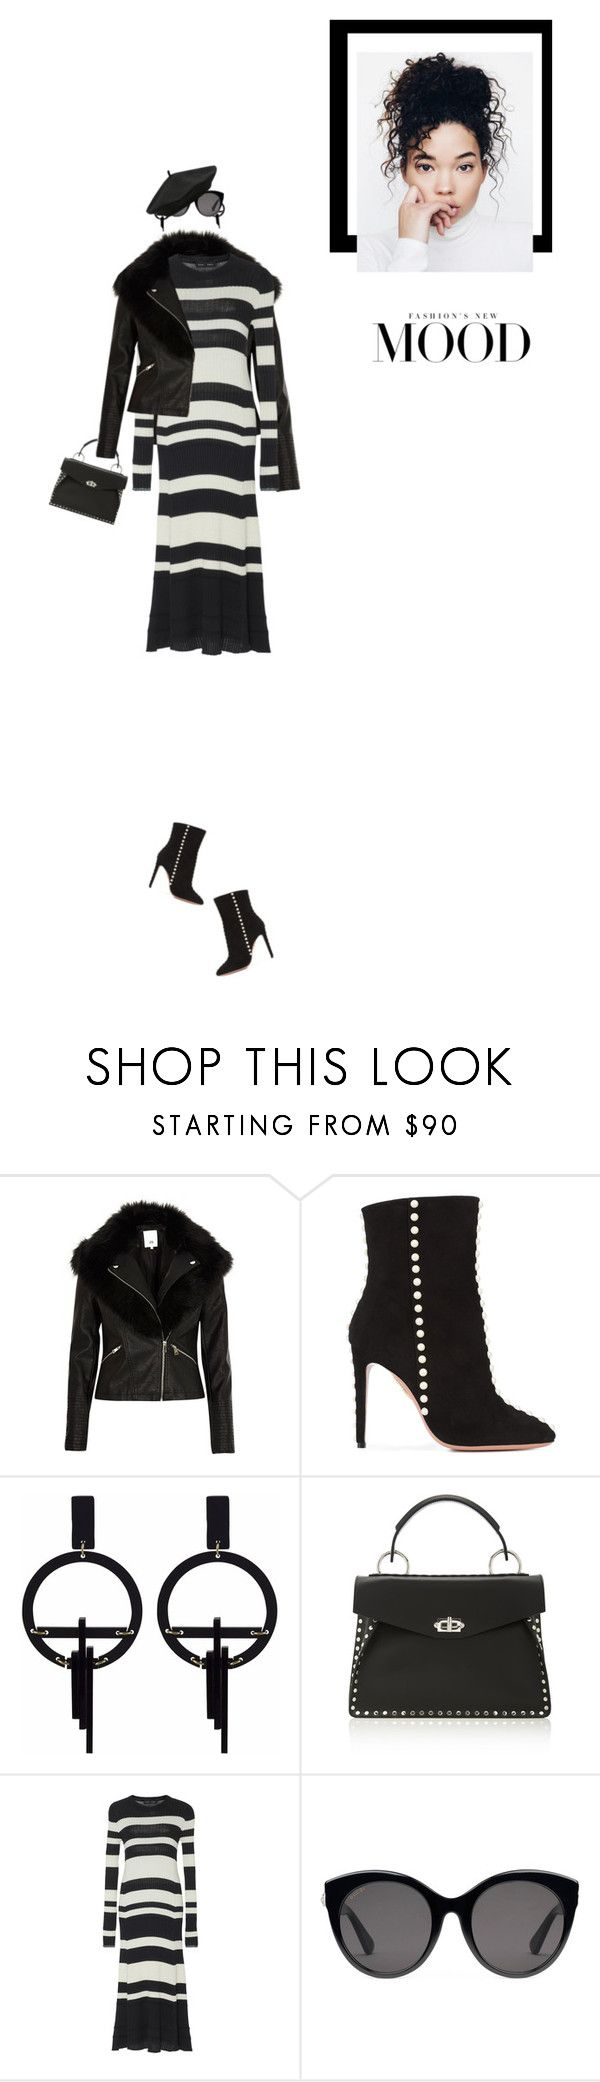 """""""Leather Jacket & Stylish Ankle Boots!"""" by prettynposh2 ❤ liked on Polyvore featuring River Island, Aquazzura, Toolally, Proenza Schouler, Gucci, M&Co, Leather and ankle"""